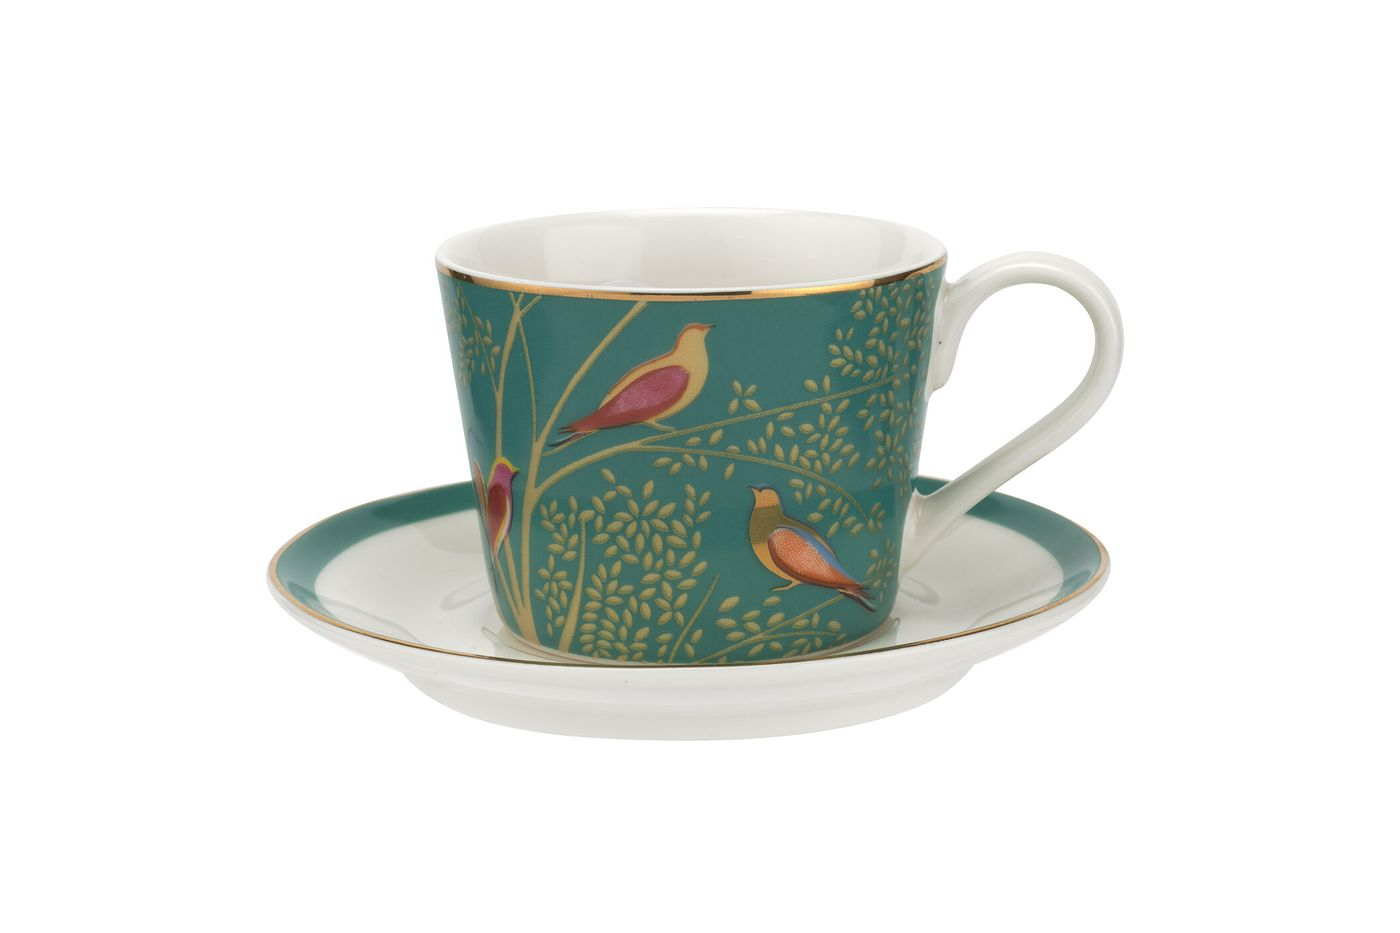 Sara Miller London for Portmeirion Chelsea Collection Espresso Cup & Saucer - Set of 4 0.11l thumb 4